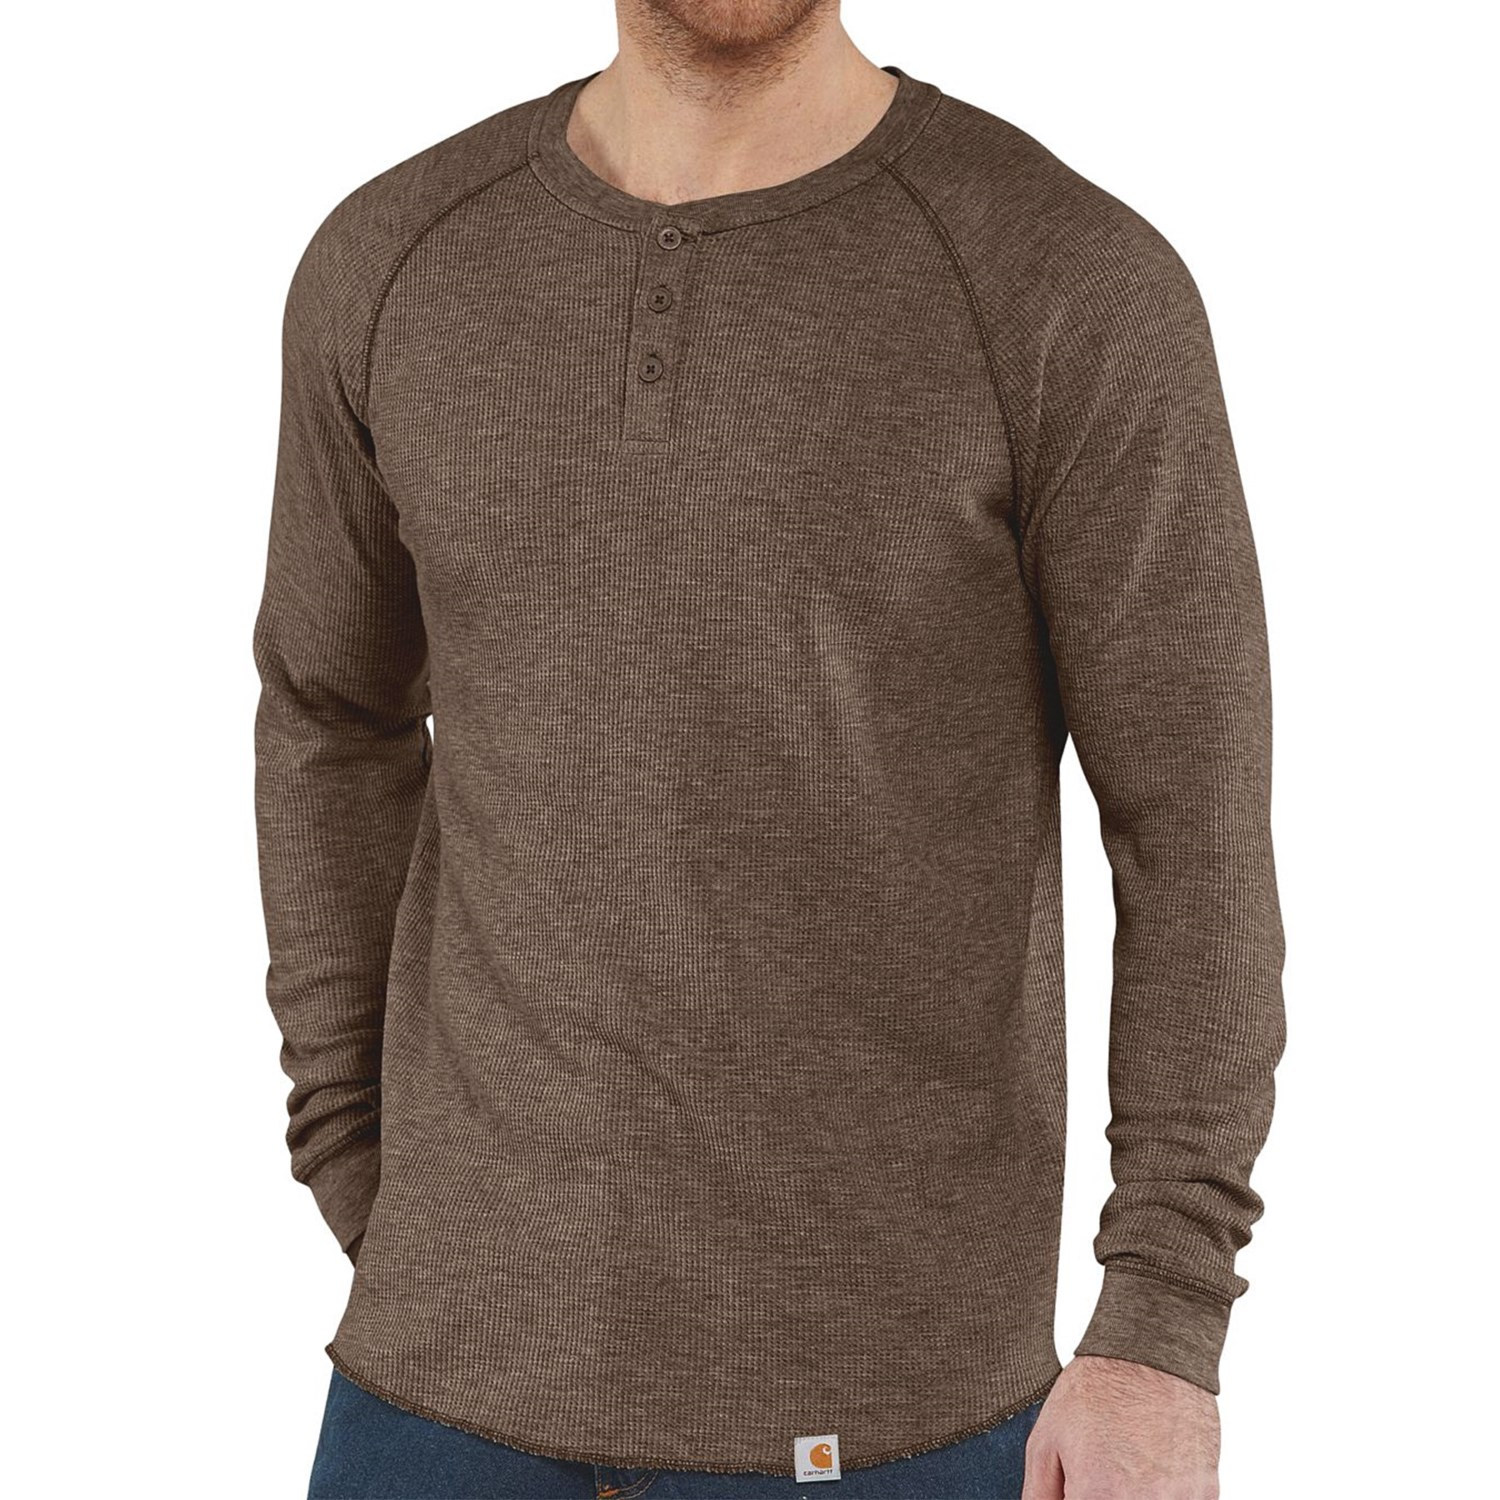 Our men's thermal shirts are available in crewneck or quarter-zip neck with tagless labels for increased comfort, because no one wants to feel that tag itch at their skin all day. Options available range from lightweight to super-cold weather long johns.